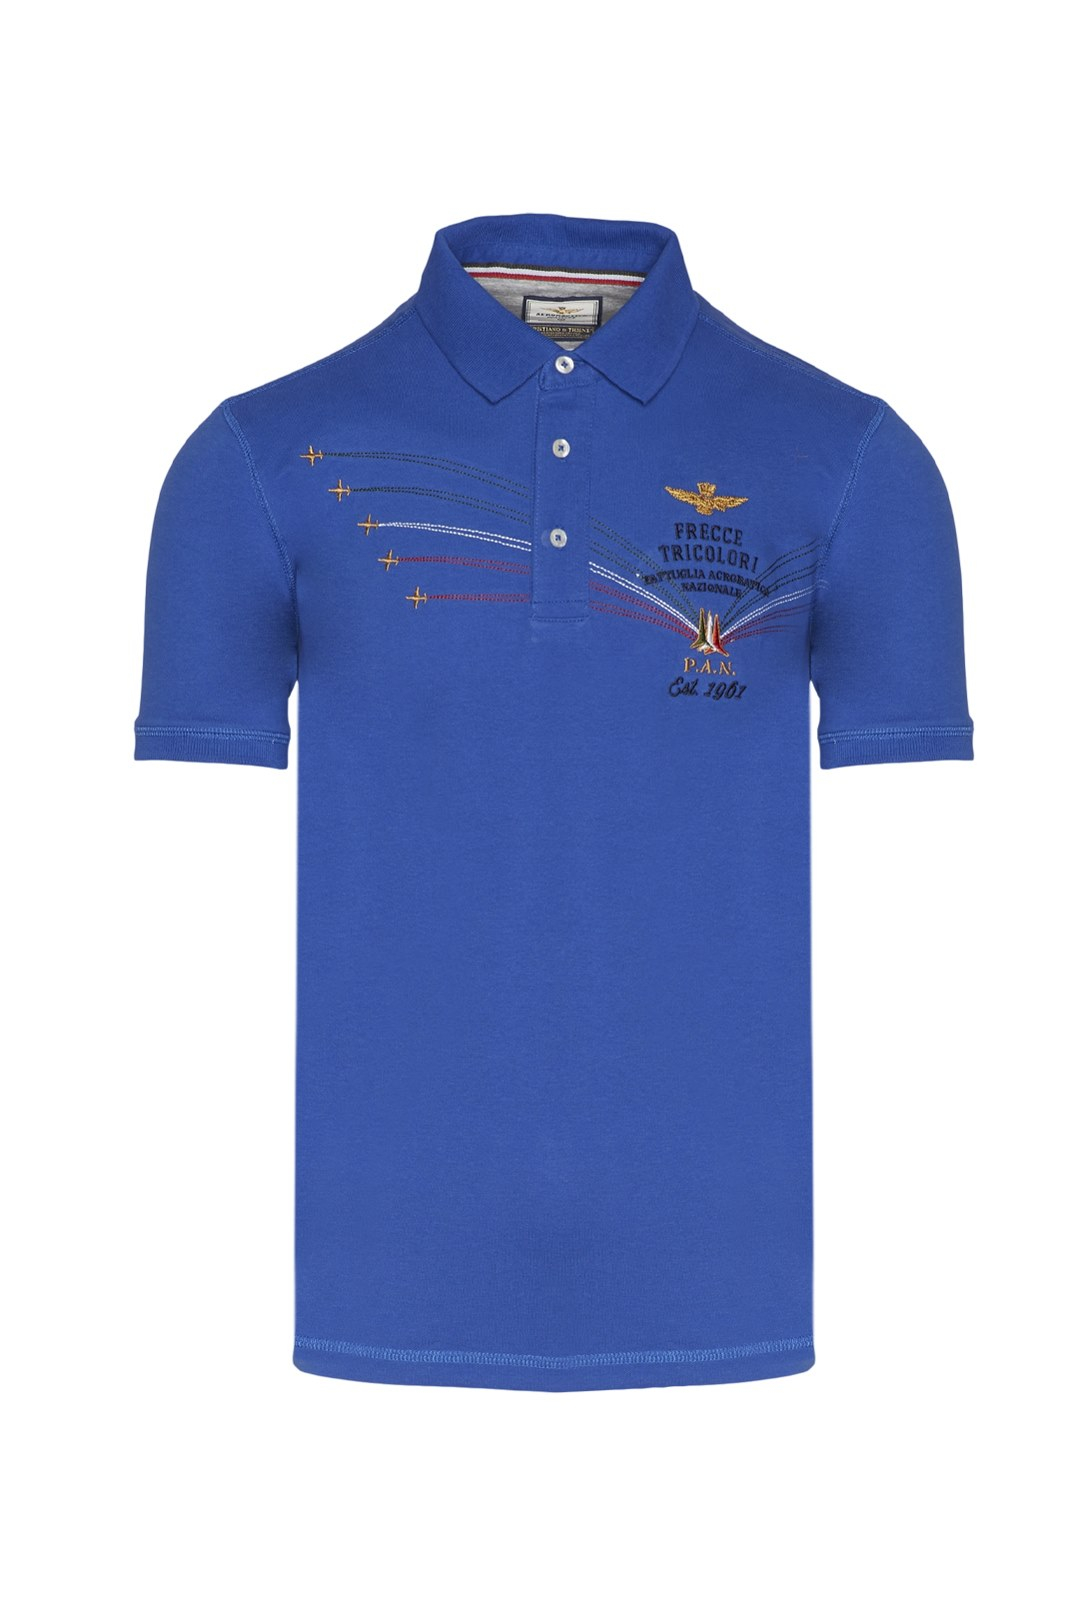 SHORT SLEEVE POLO                        1